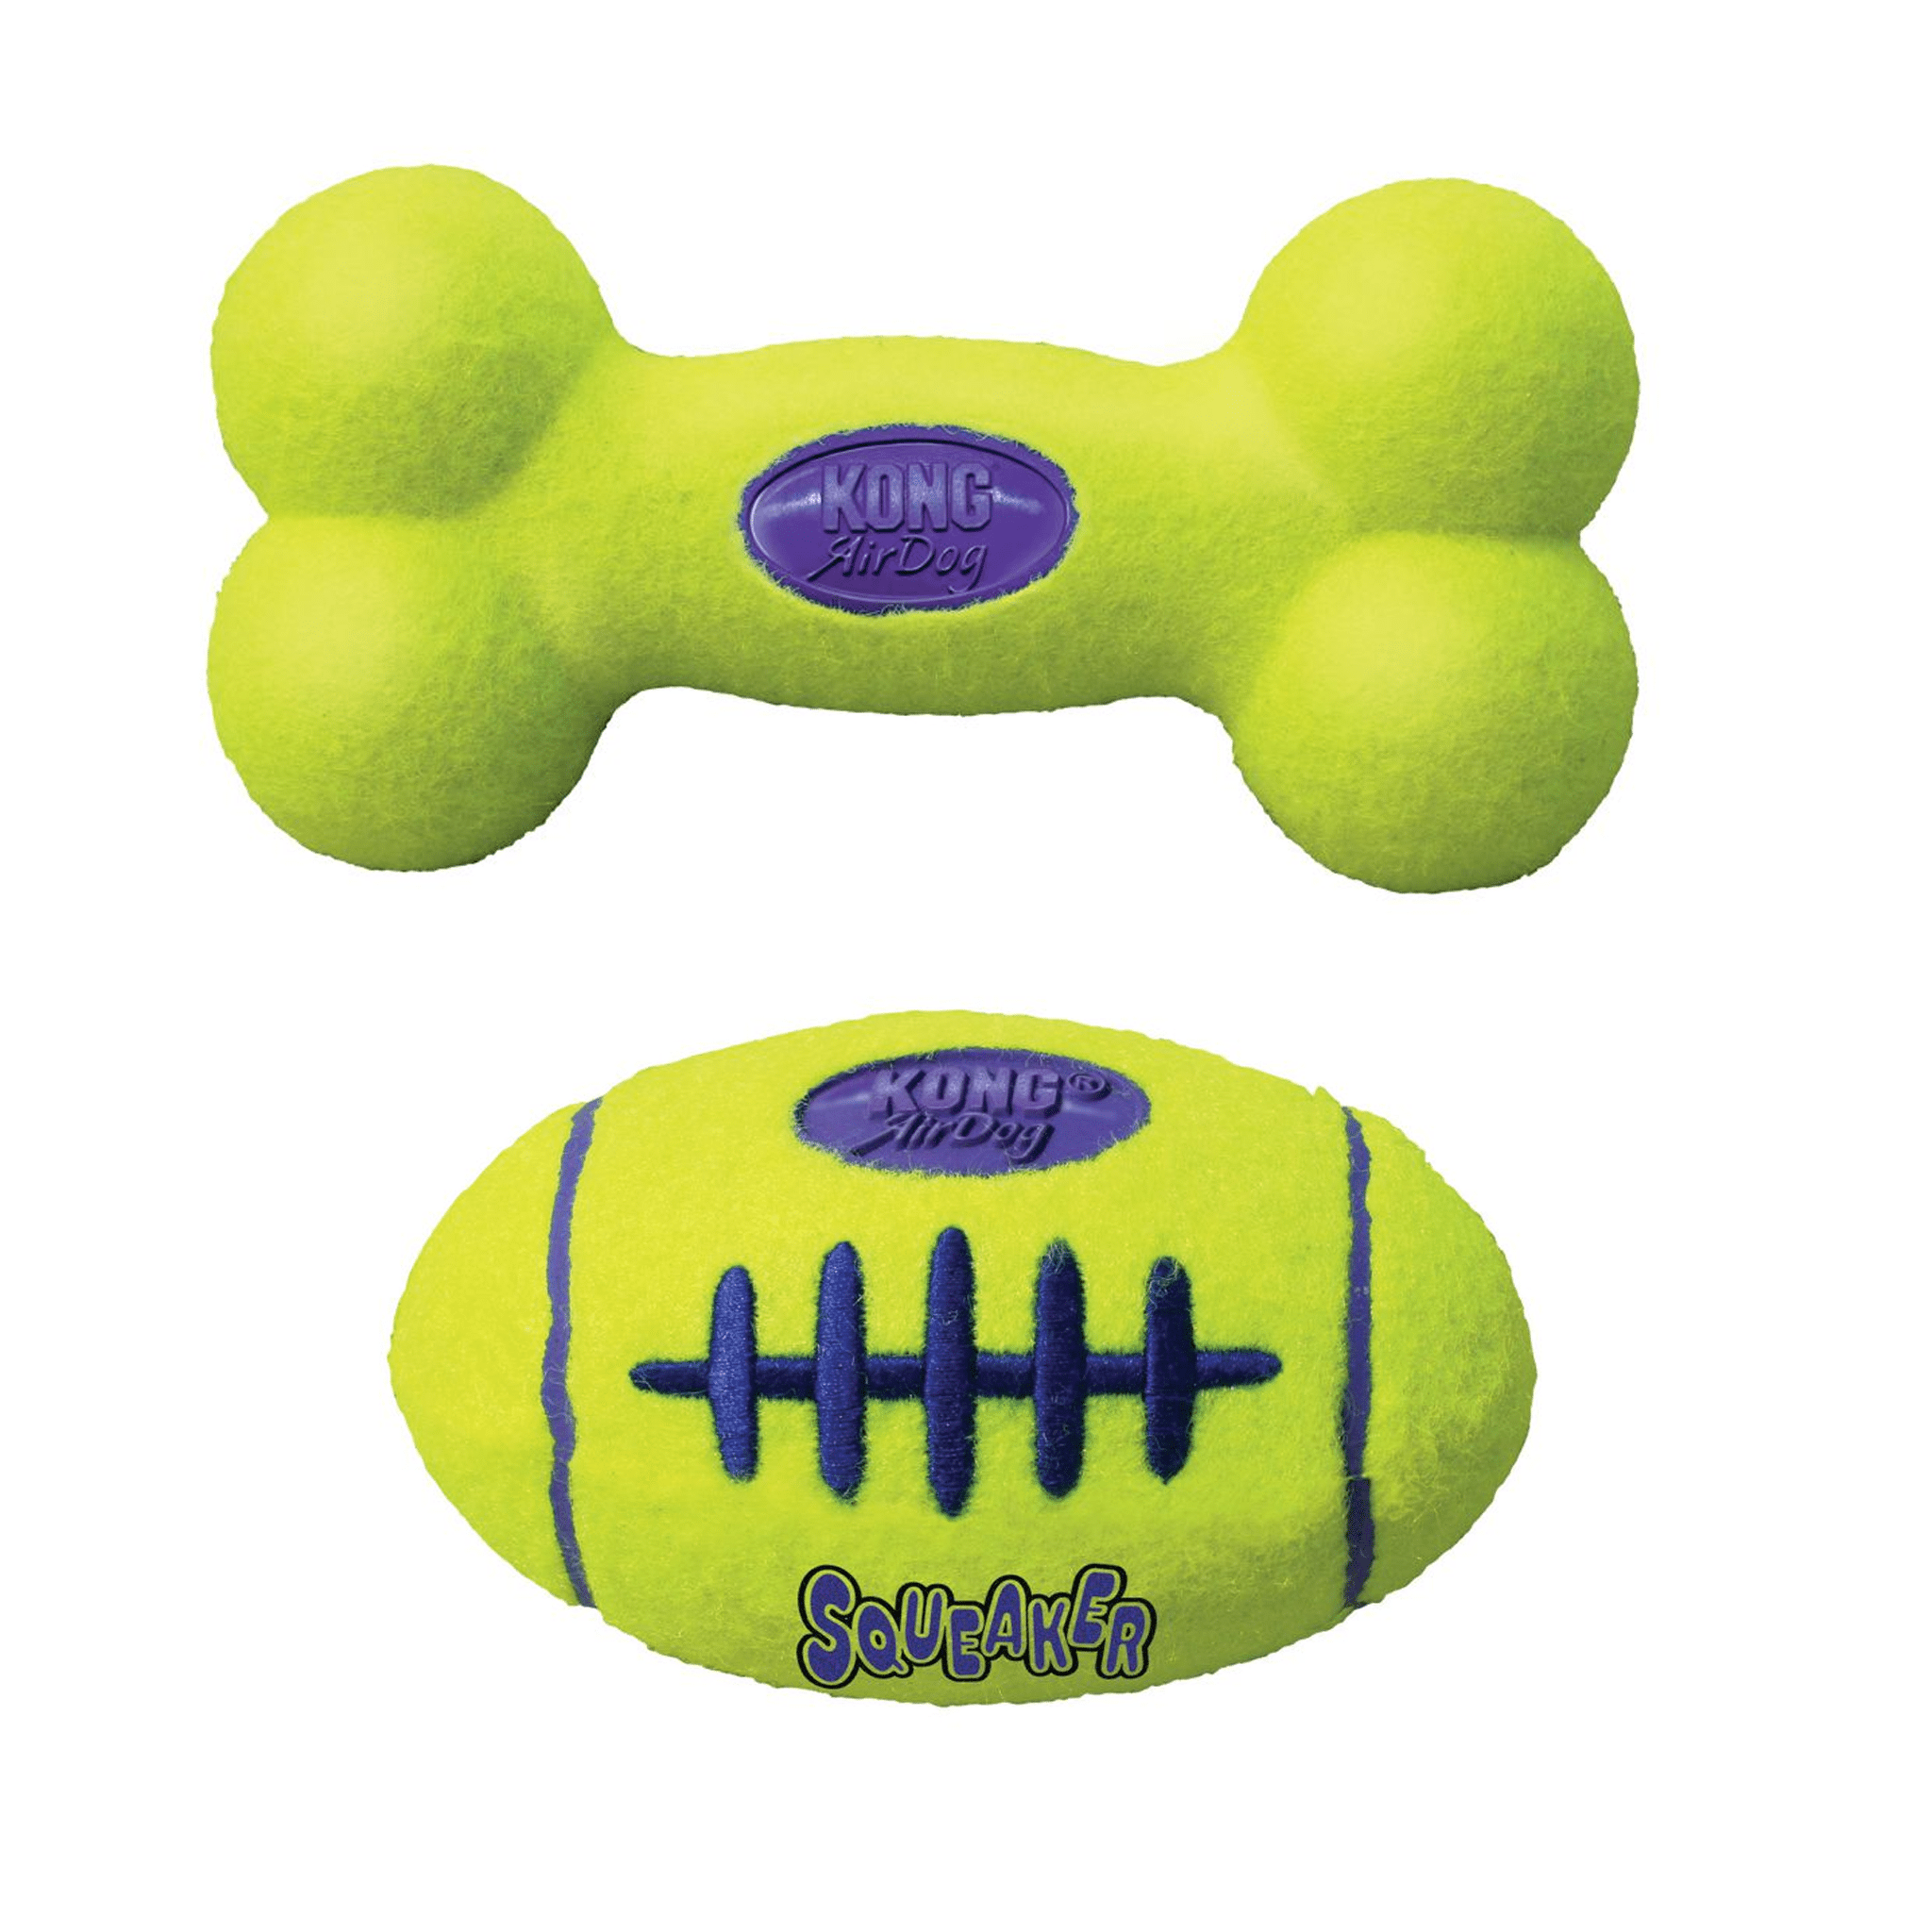 Kong AirDog Squeaker Bone Football KON0015